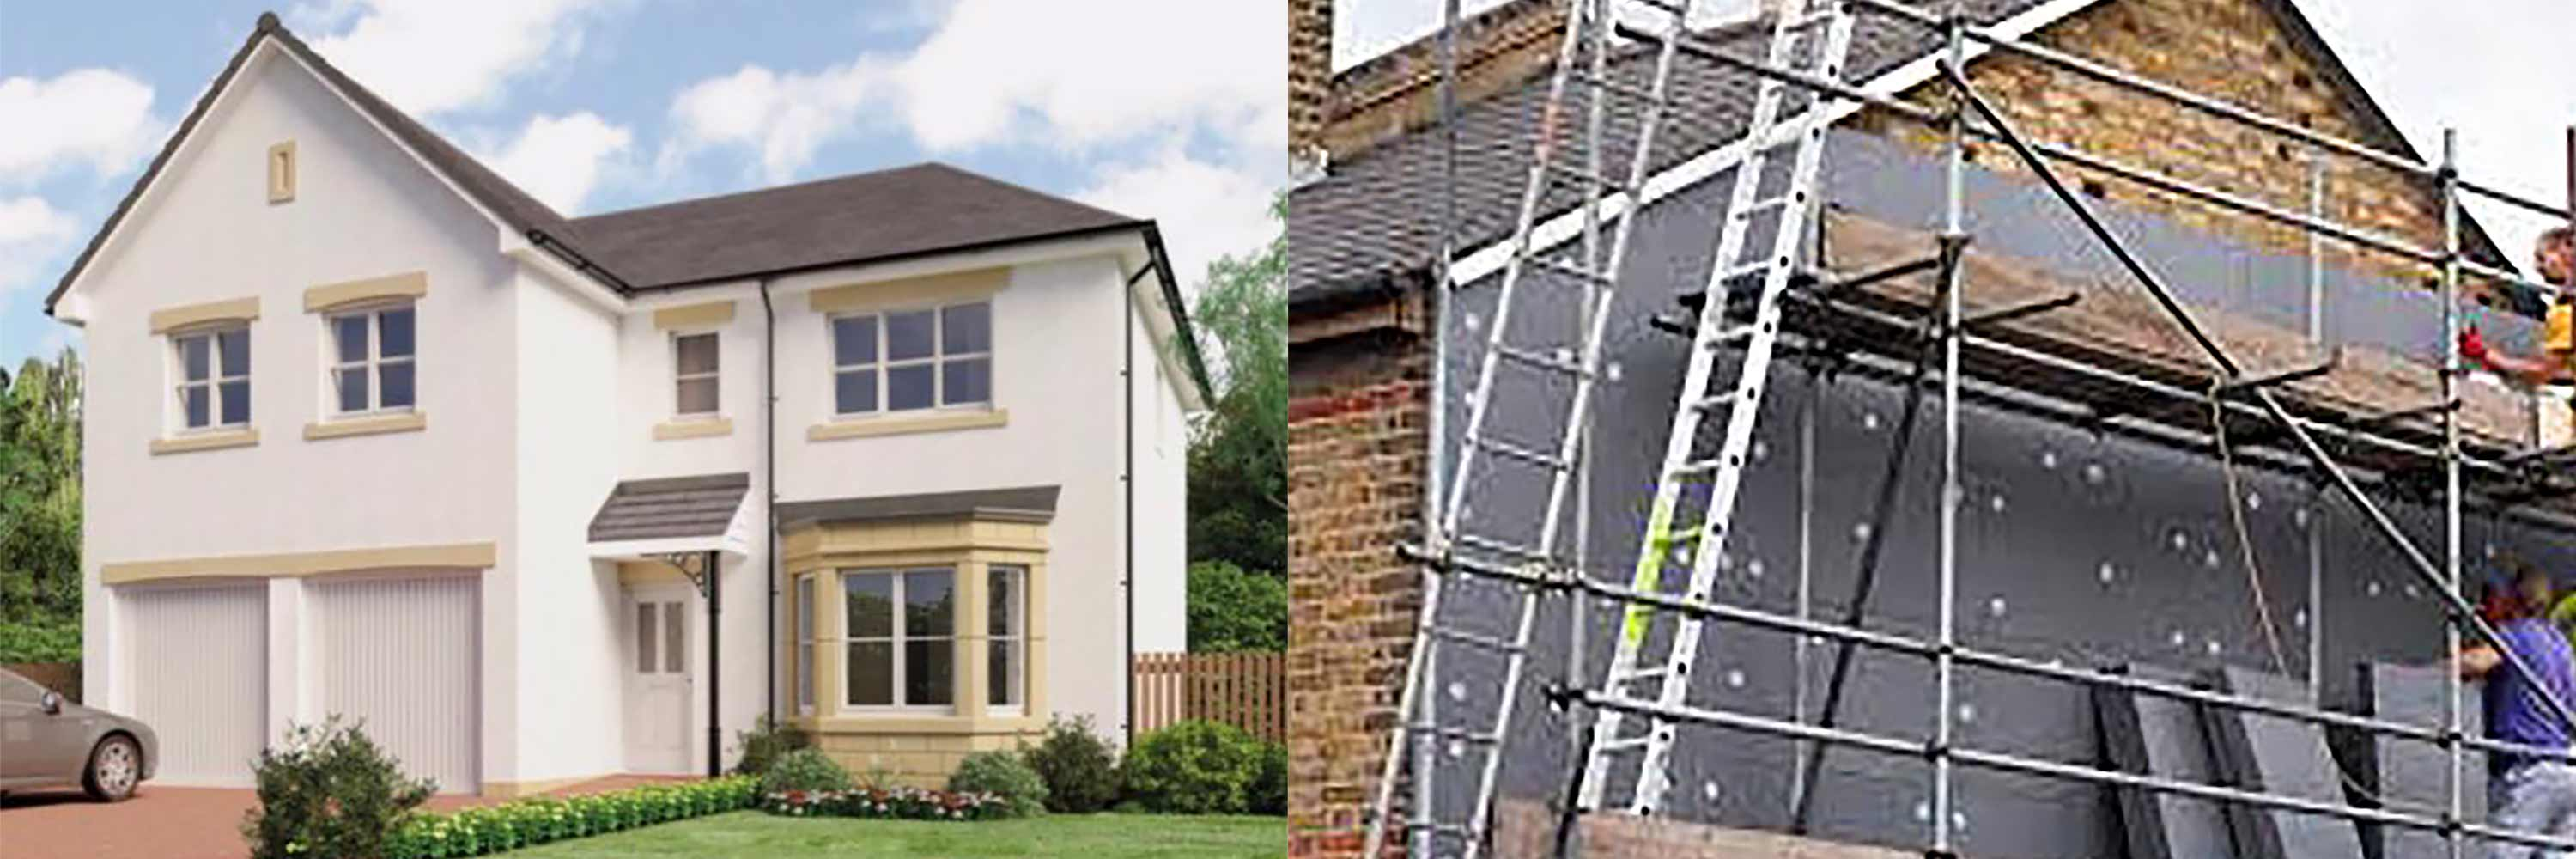 Solid Wall Insulation Services by Origin UK Energy Services Ltd in Derby